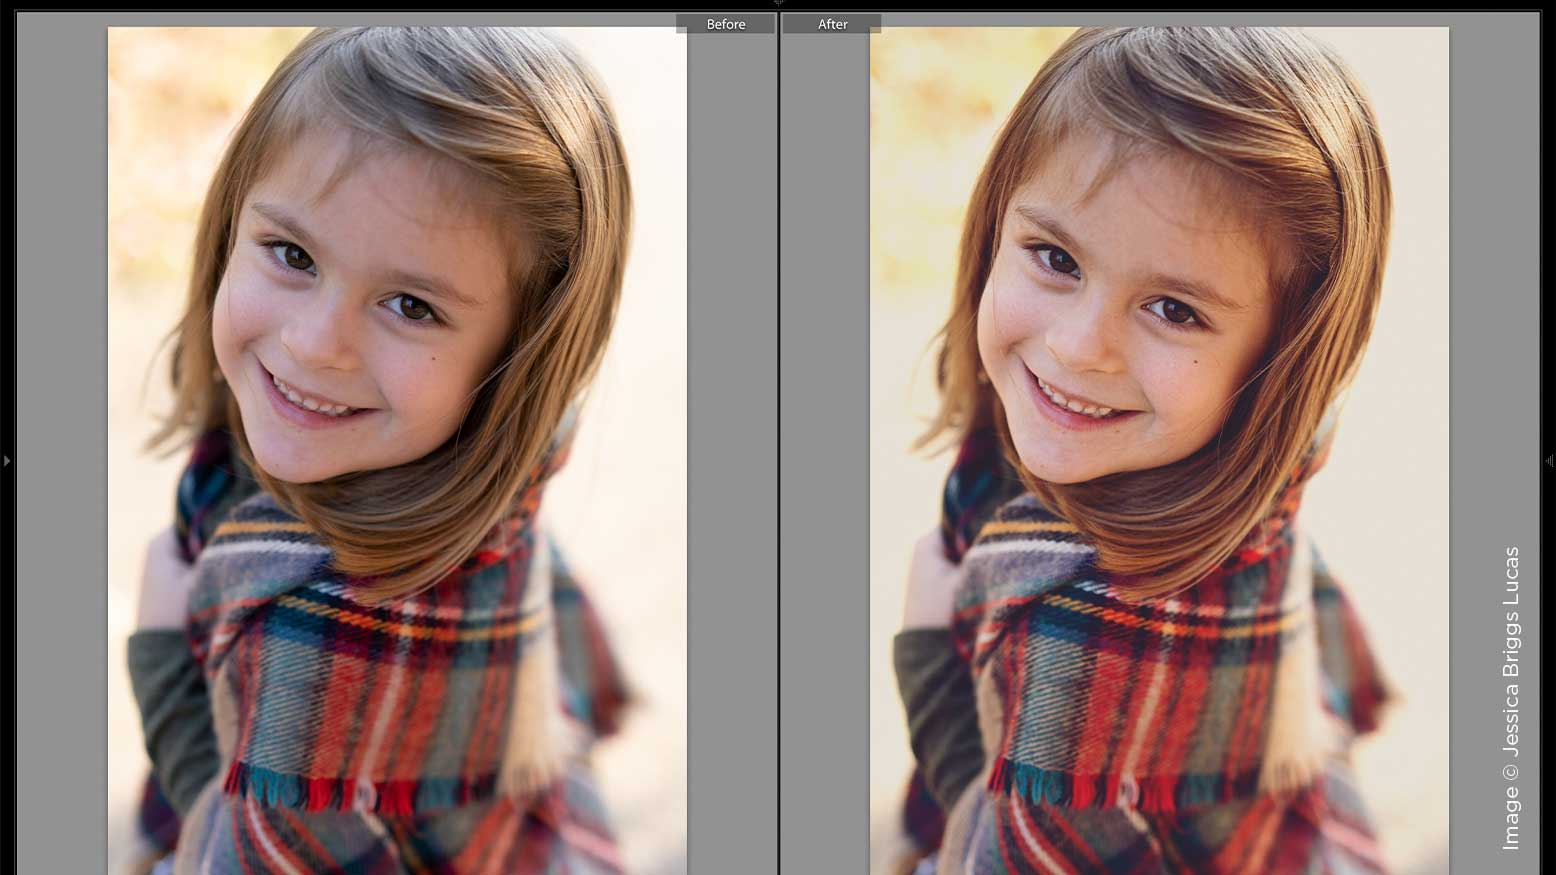 5 Reasons to Build Custom Lightroom Profiles